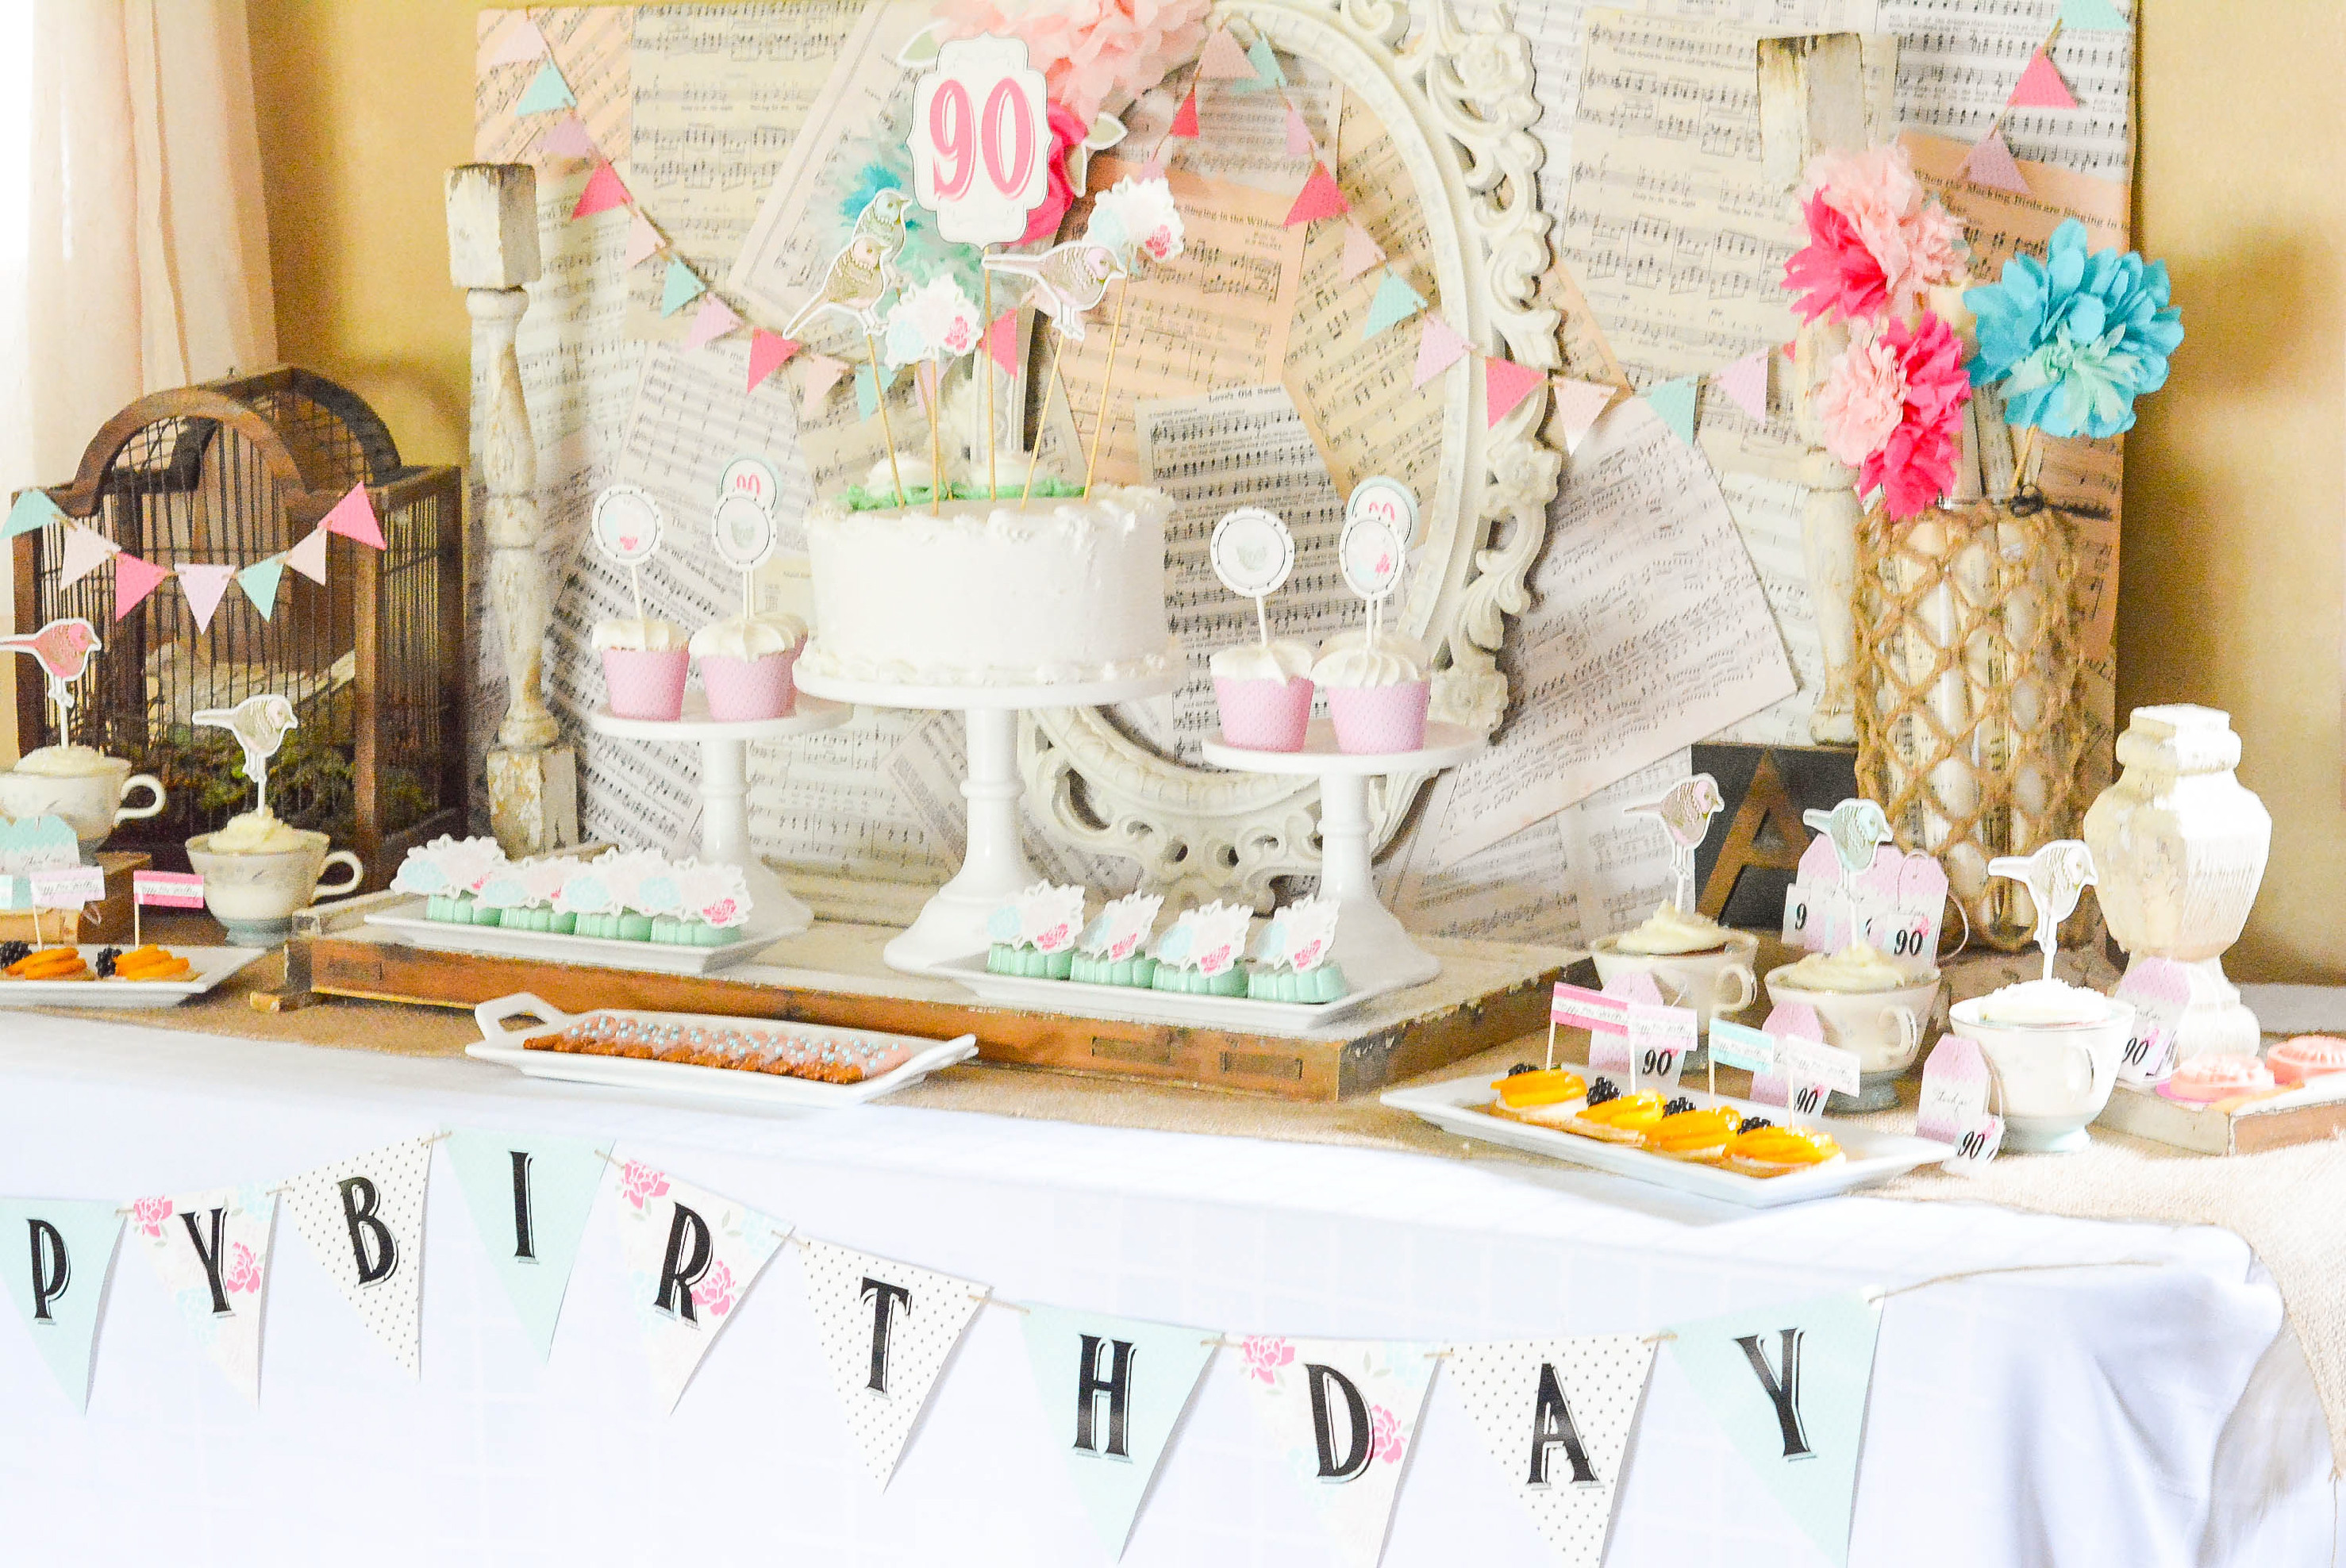 Best ideas about Vintage Birthday Party . Save or Pin A Shabby Chic Vintage Rose 90th Birthday Celebration Now.